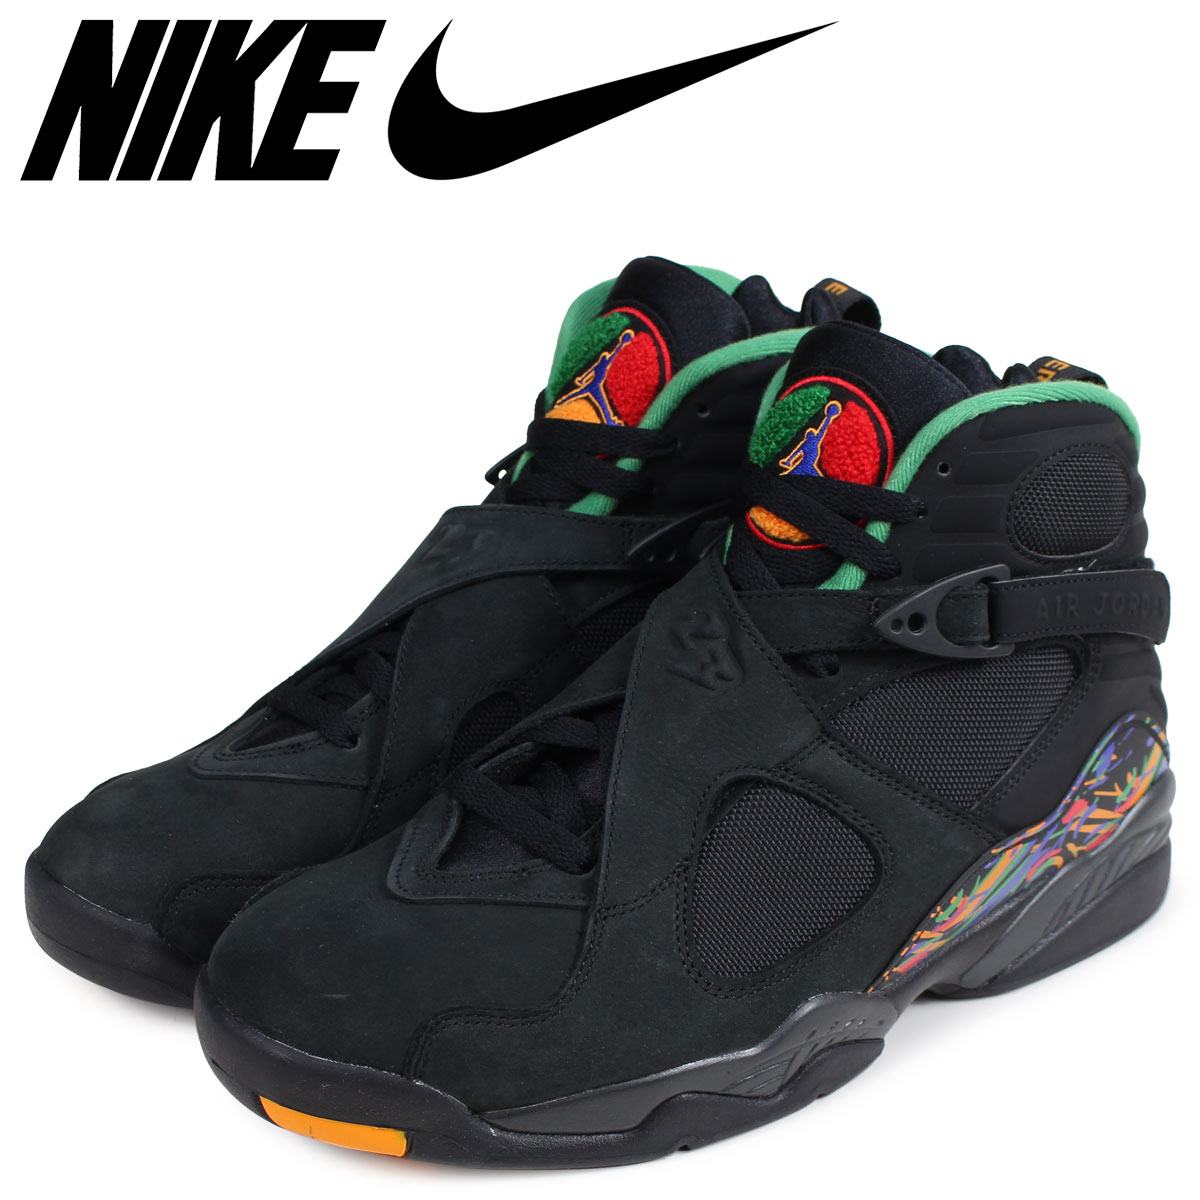 nouveaux styles b5b24 34734 NIKE Nike Air Jordan 8 nostalgic sneakers men AIR JORDAN 8 RETRO  305,381-004 black black